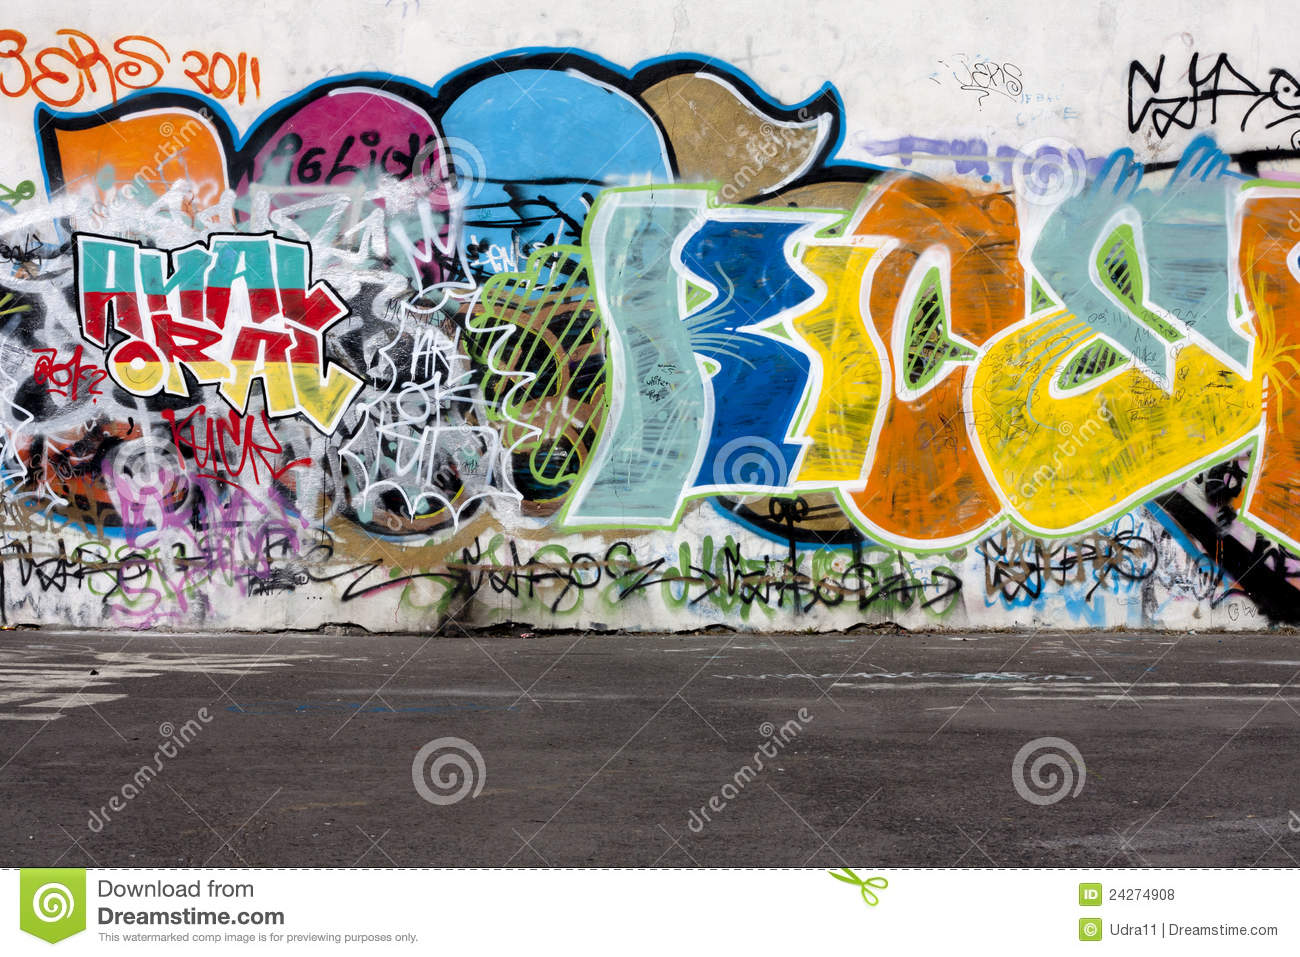 Graffiti and concrete floor abstract background